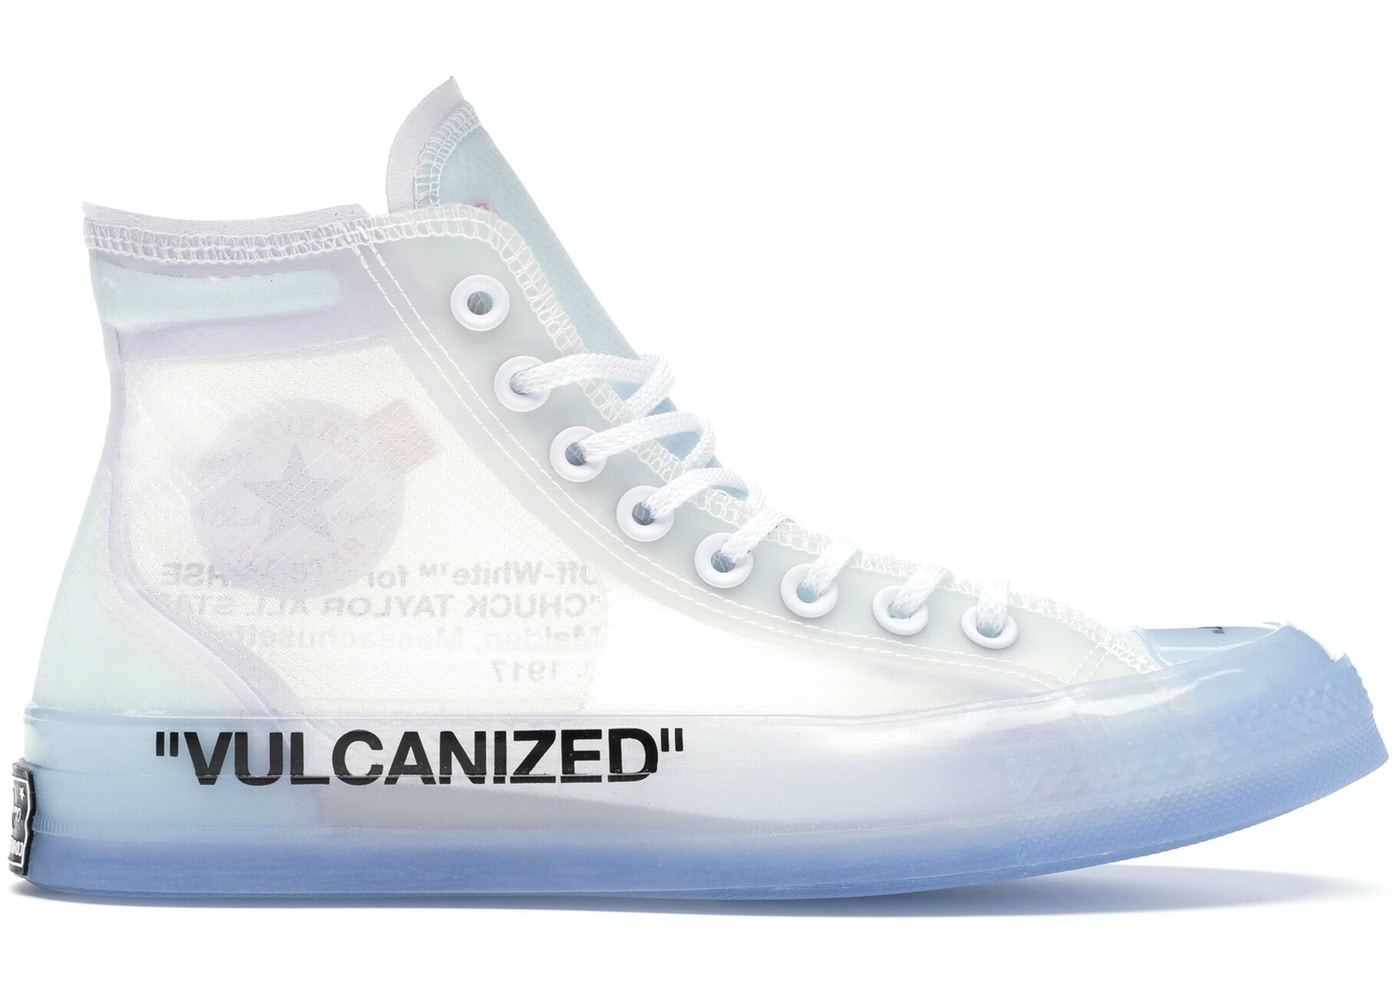 new style 7bc41 8ecda Converse Chuck Taylor All-Star Vulcanized Hi Off-White